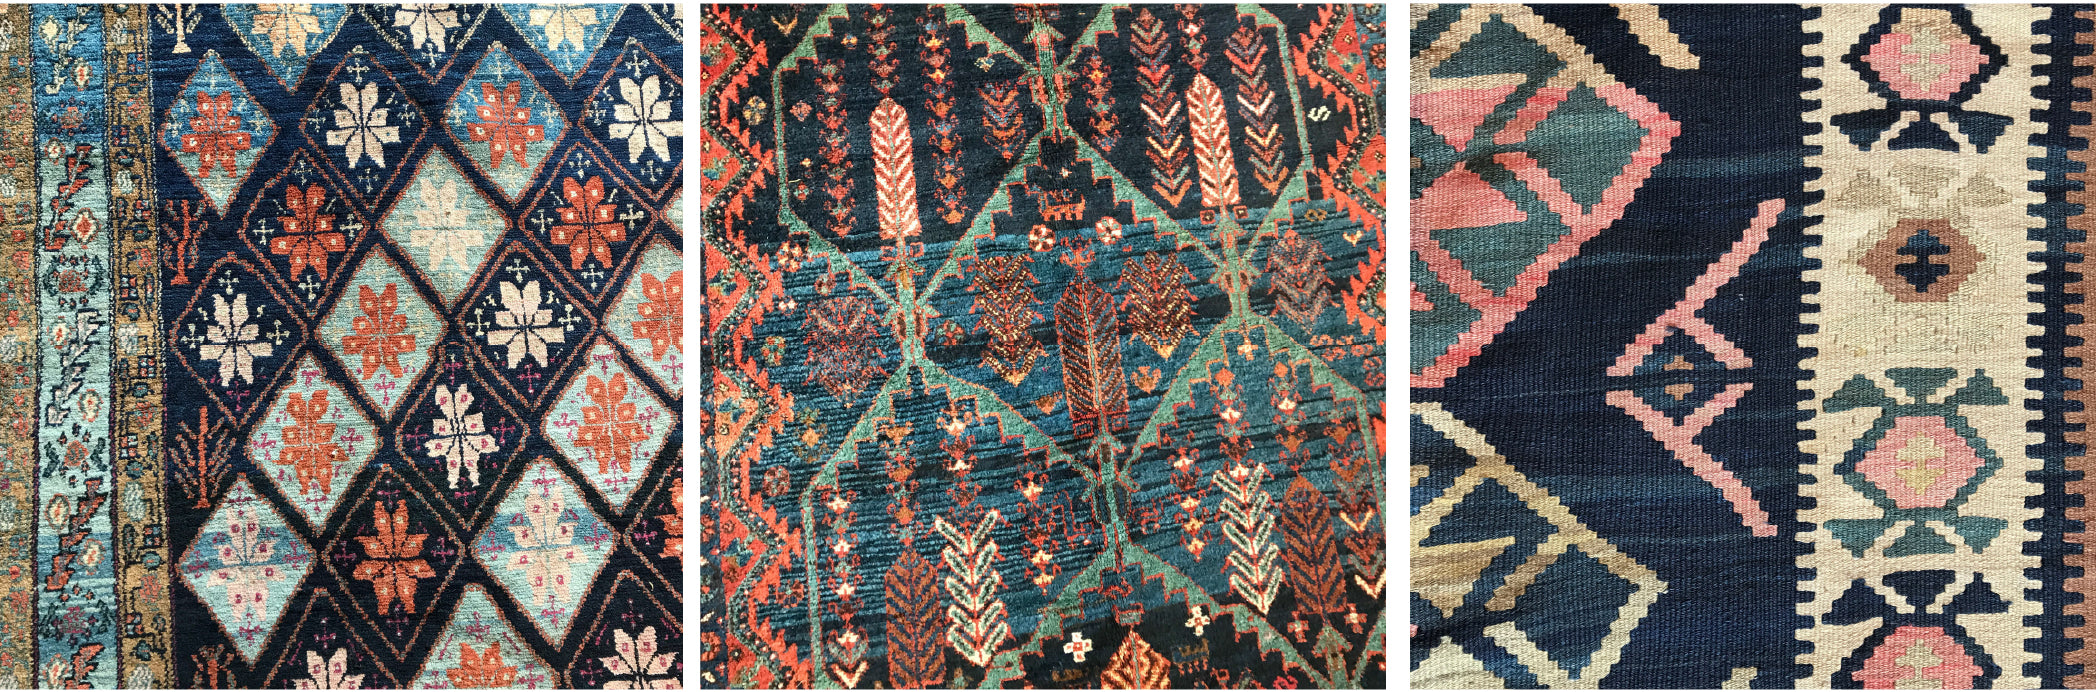 Examples of abrash in Persian Malayer, Veramin and Caucasian Shirvan Kilim